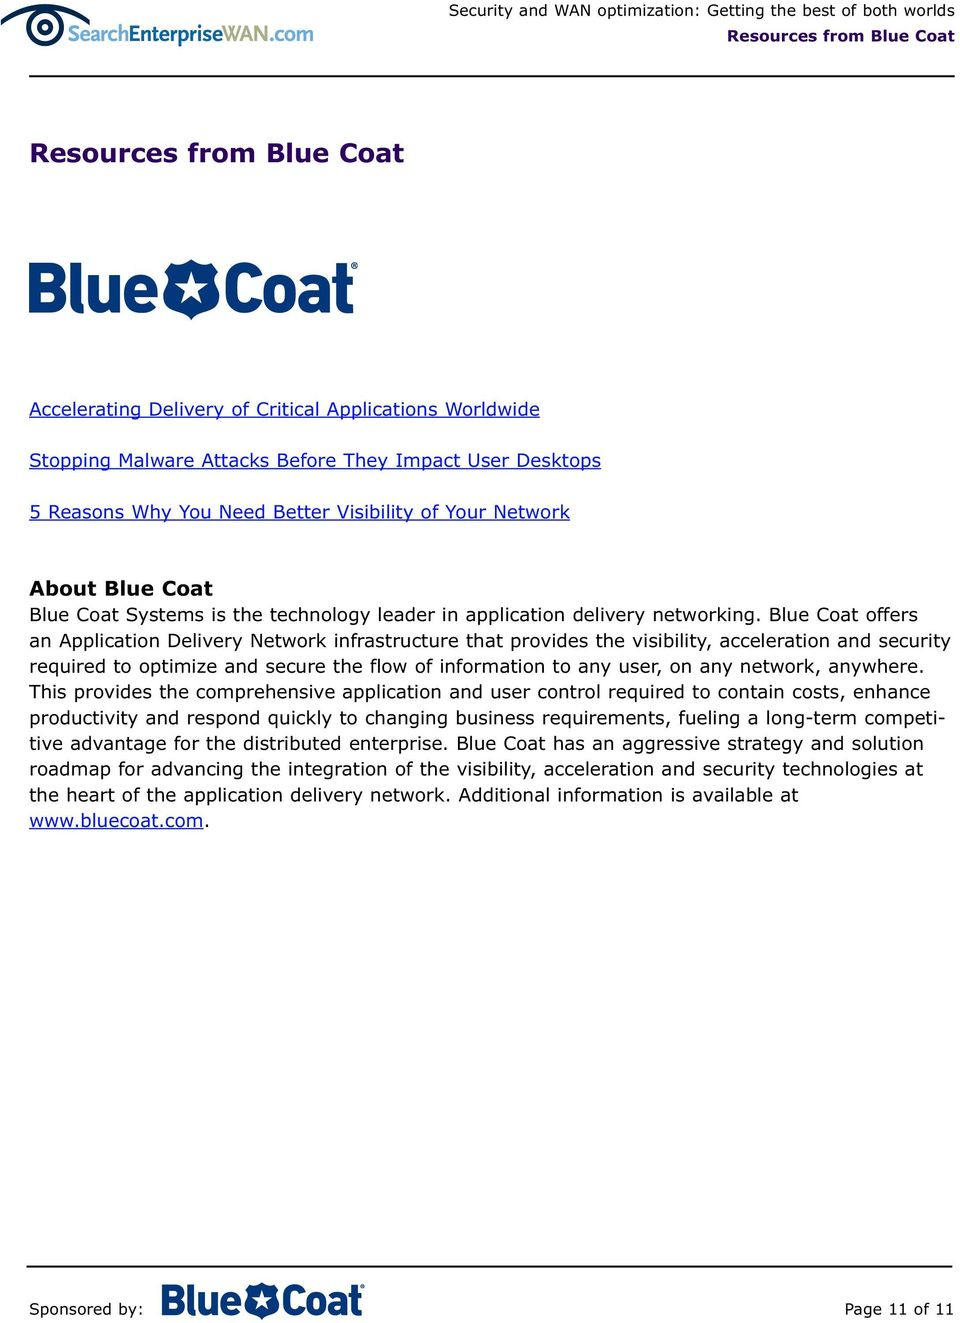 Blue Coat offers an Application Delivery Network infrastructure that provides the visibility, acceleration and security required to optimize and secure the flow of information to any user, on any